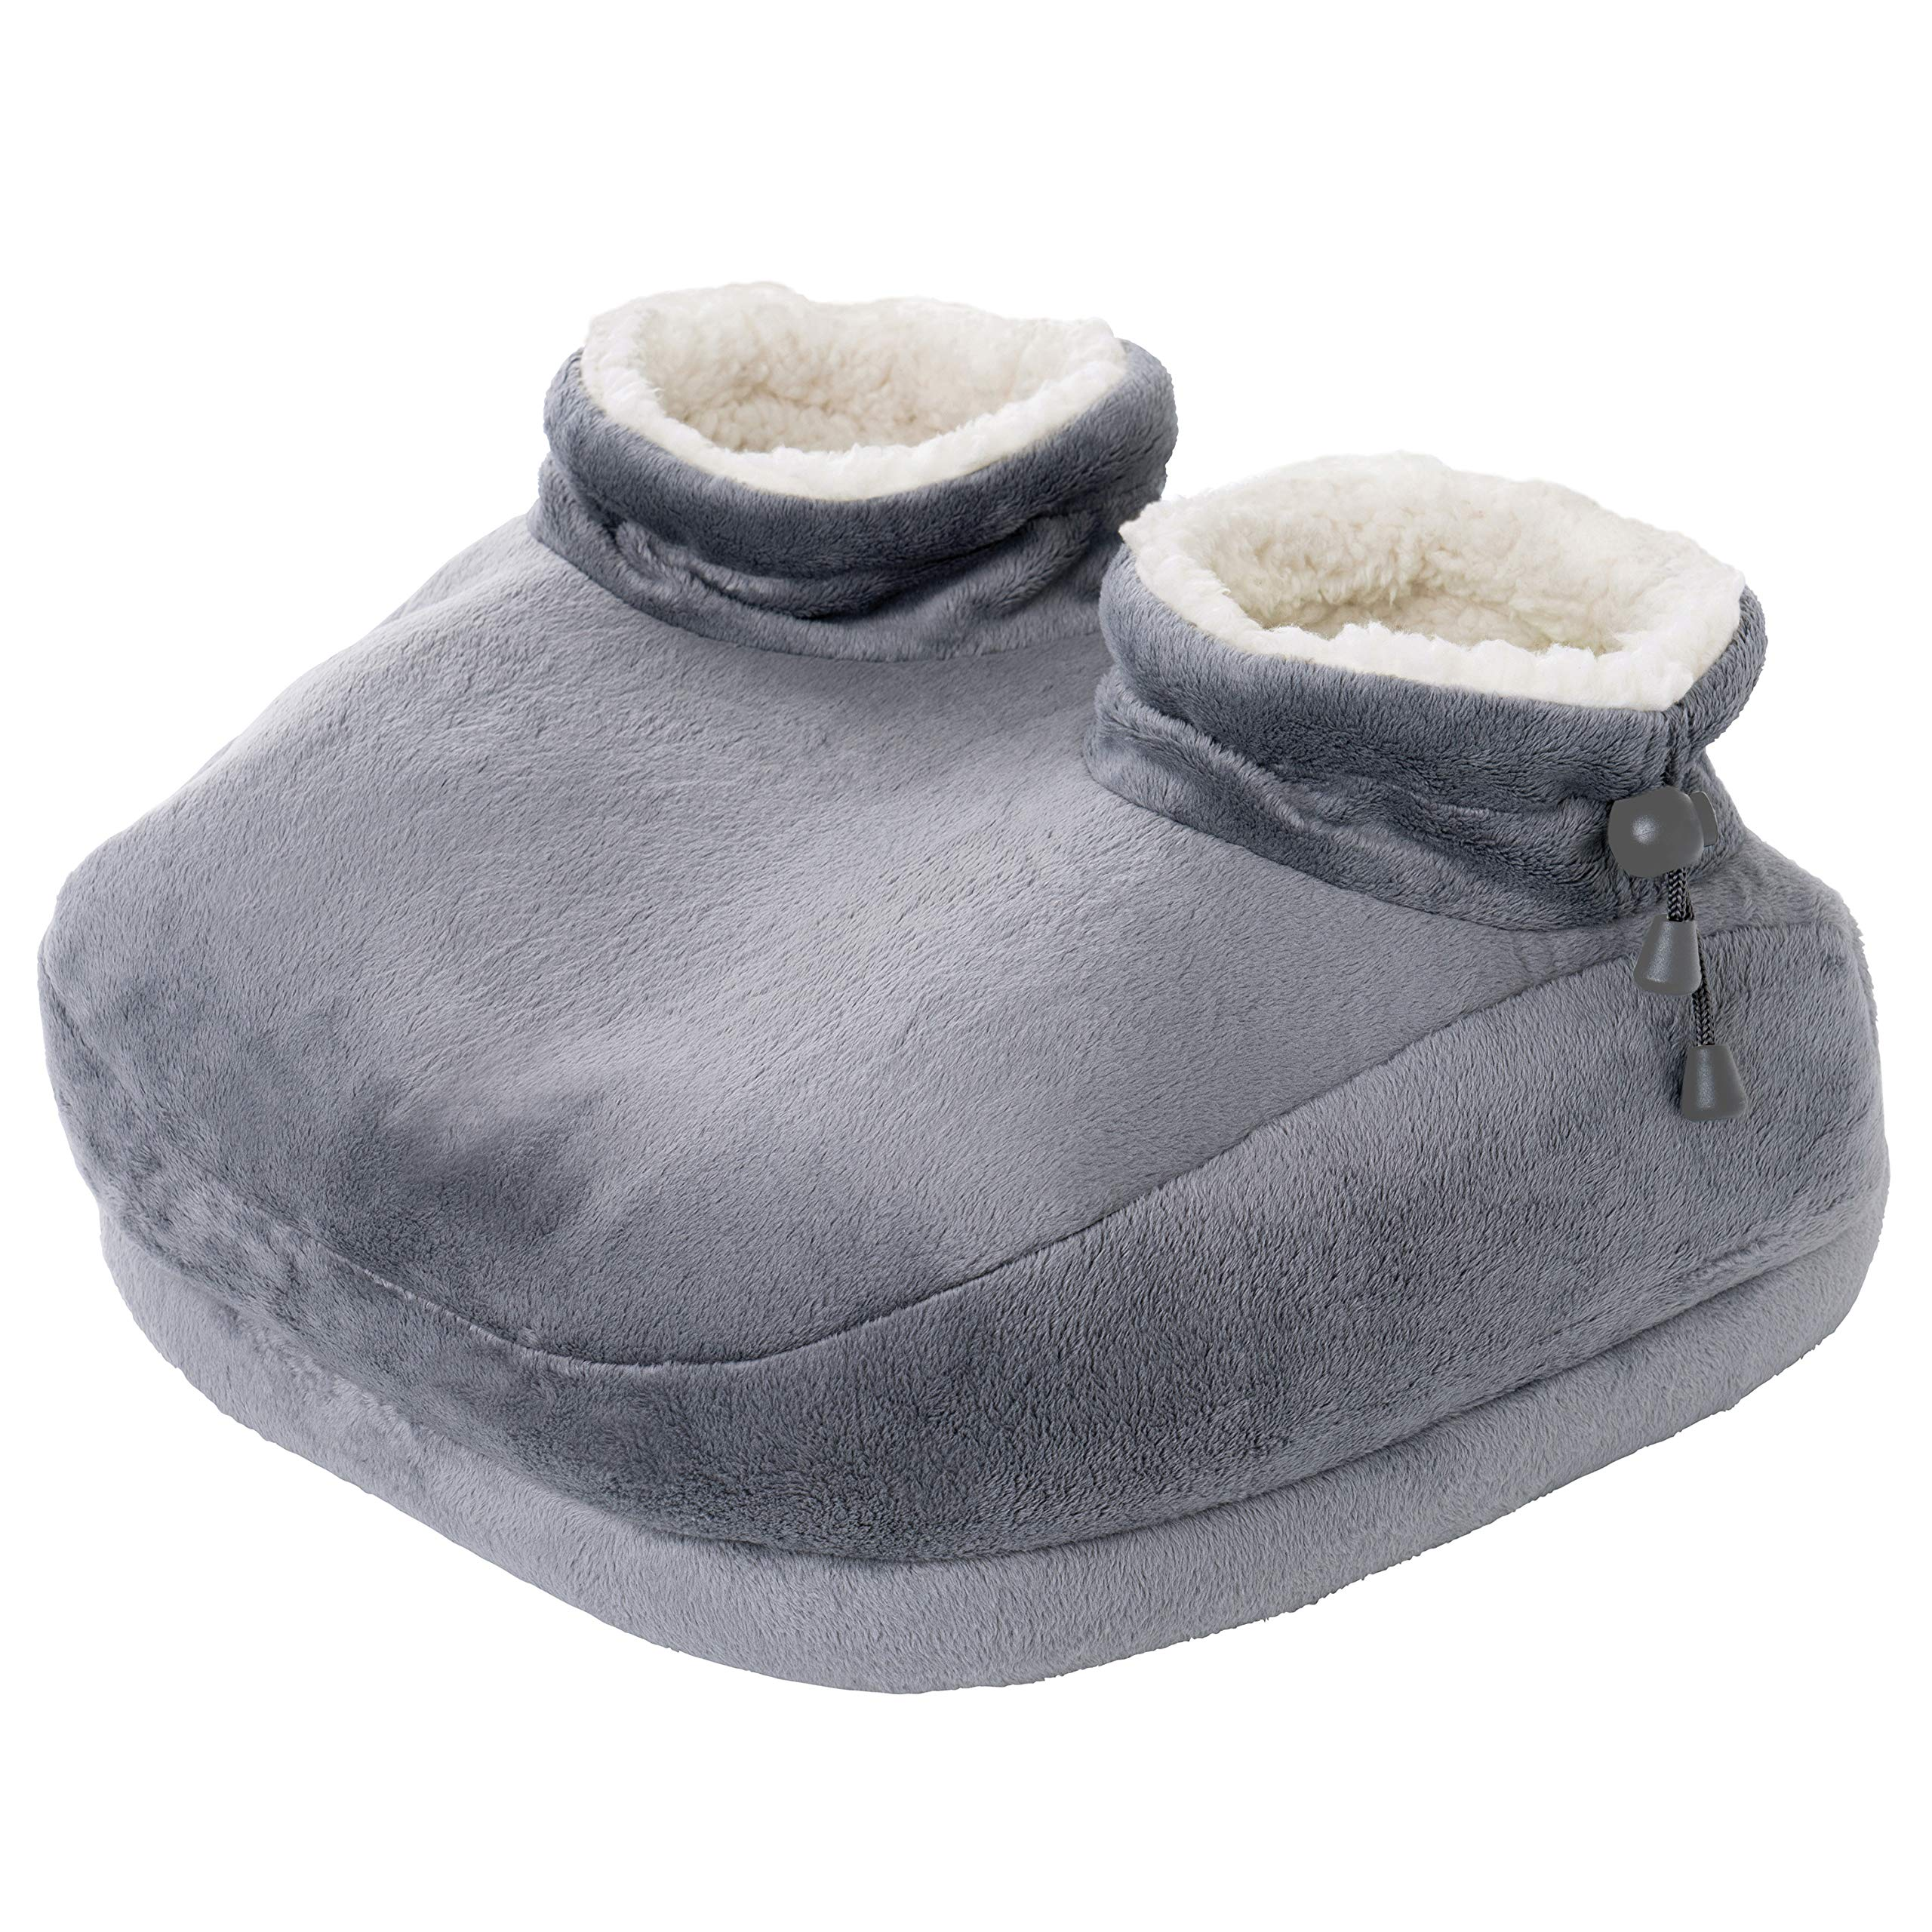 Pure Enrichment PureRelief Deluxe Foot Warmer - Super-Soft Sherpa-Lined, Fast-Heating Electric Boots with 4 Temperature Settings, Machine-Washable Fabric, Durable Anti-Slip Sole and Auto Shut-Off by Pure Enrichment